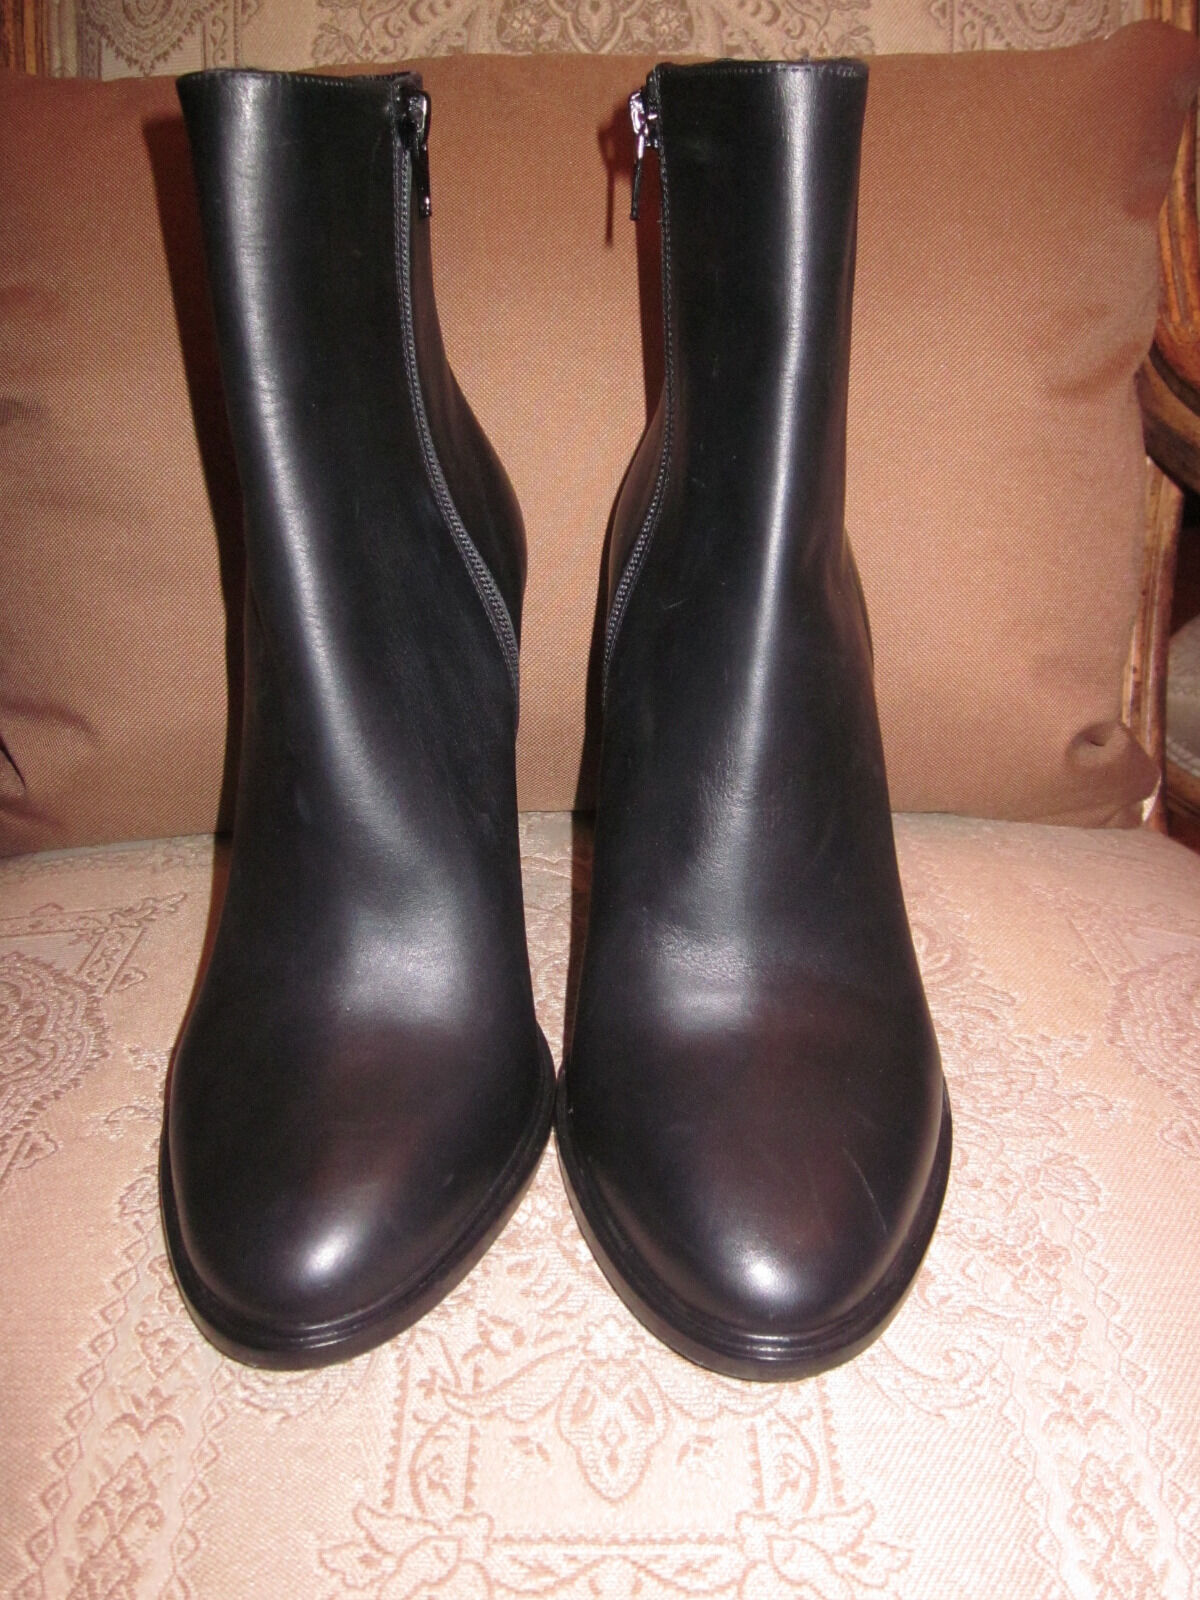 Vince Ogreenon leather Ankle Boots Black 10M EUR 41.5 New